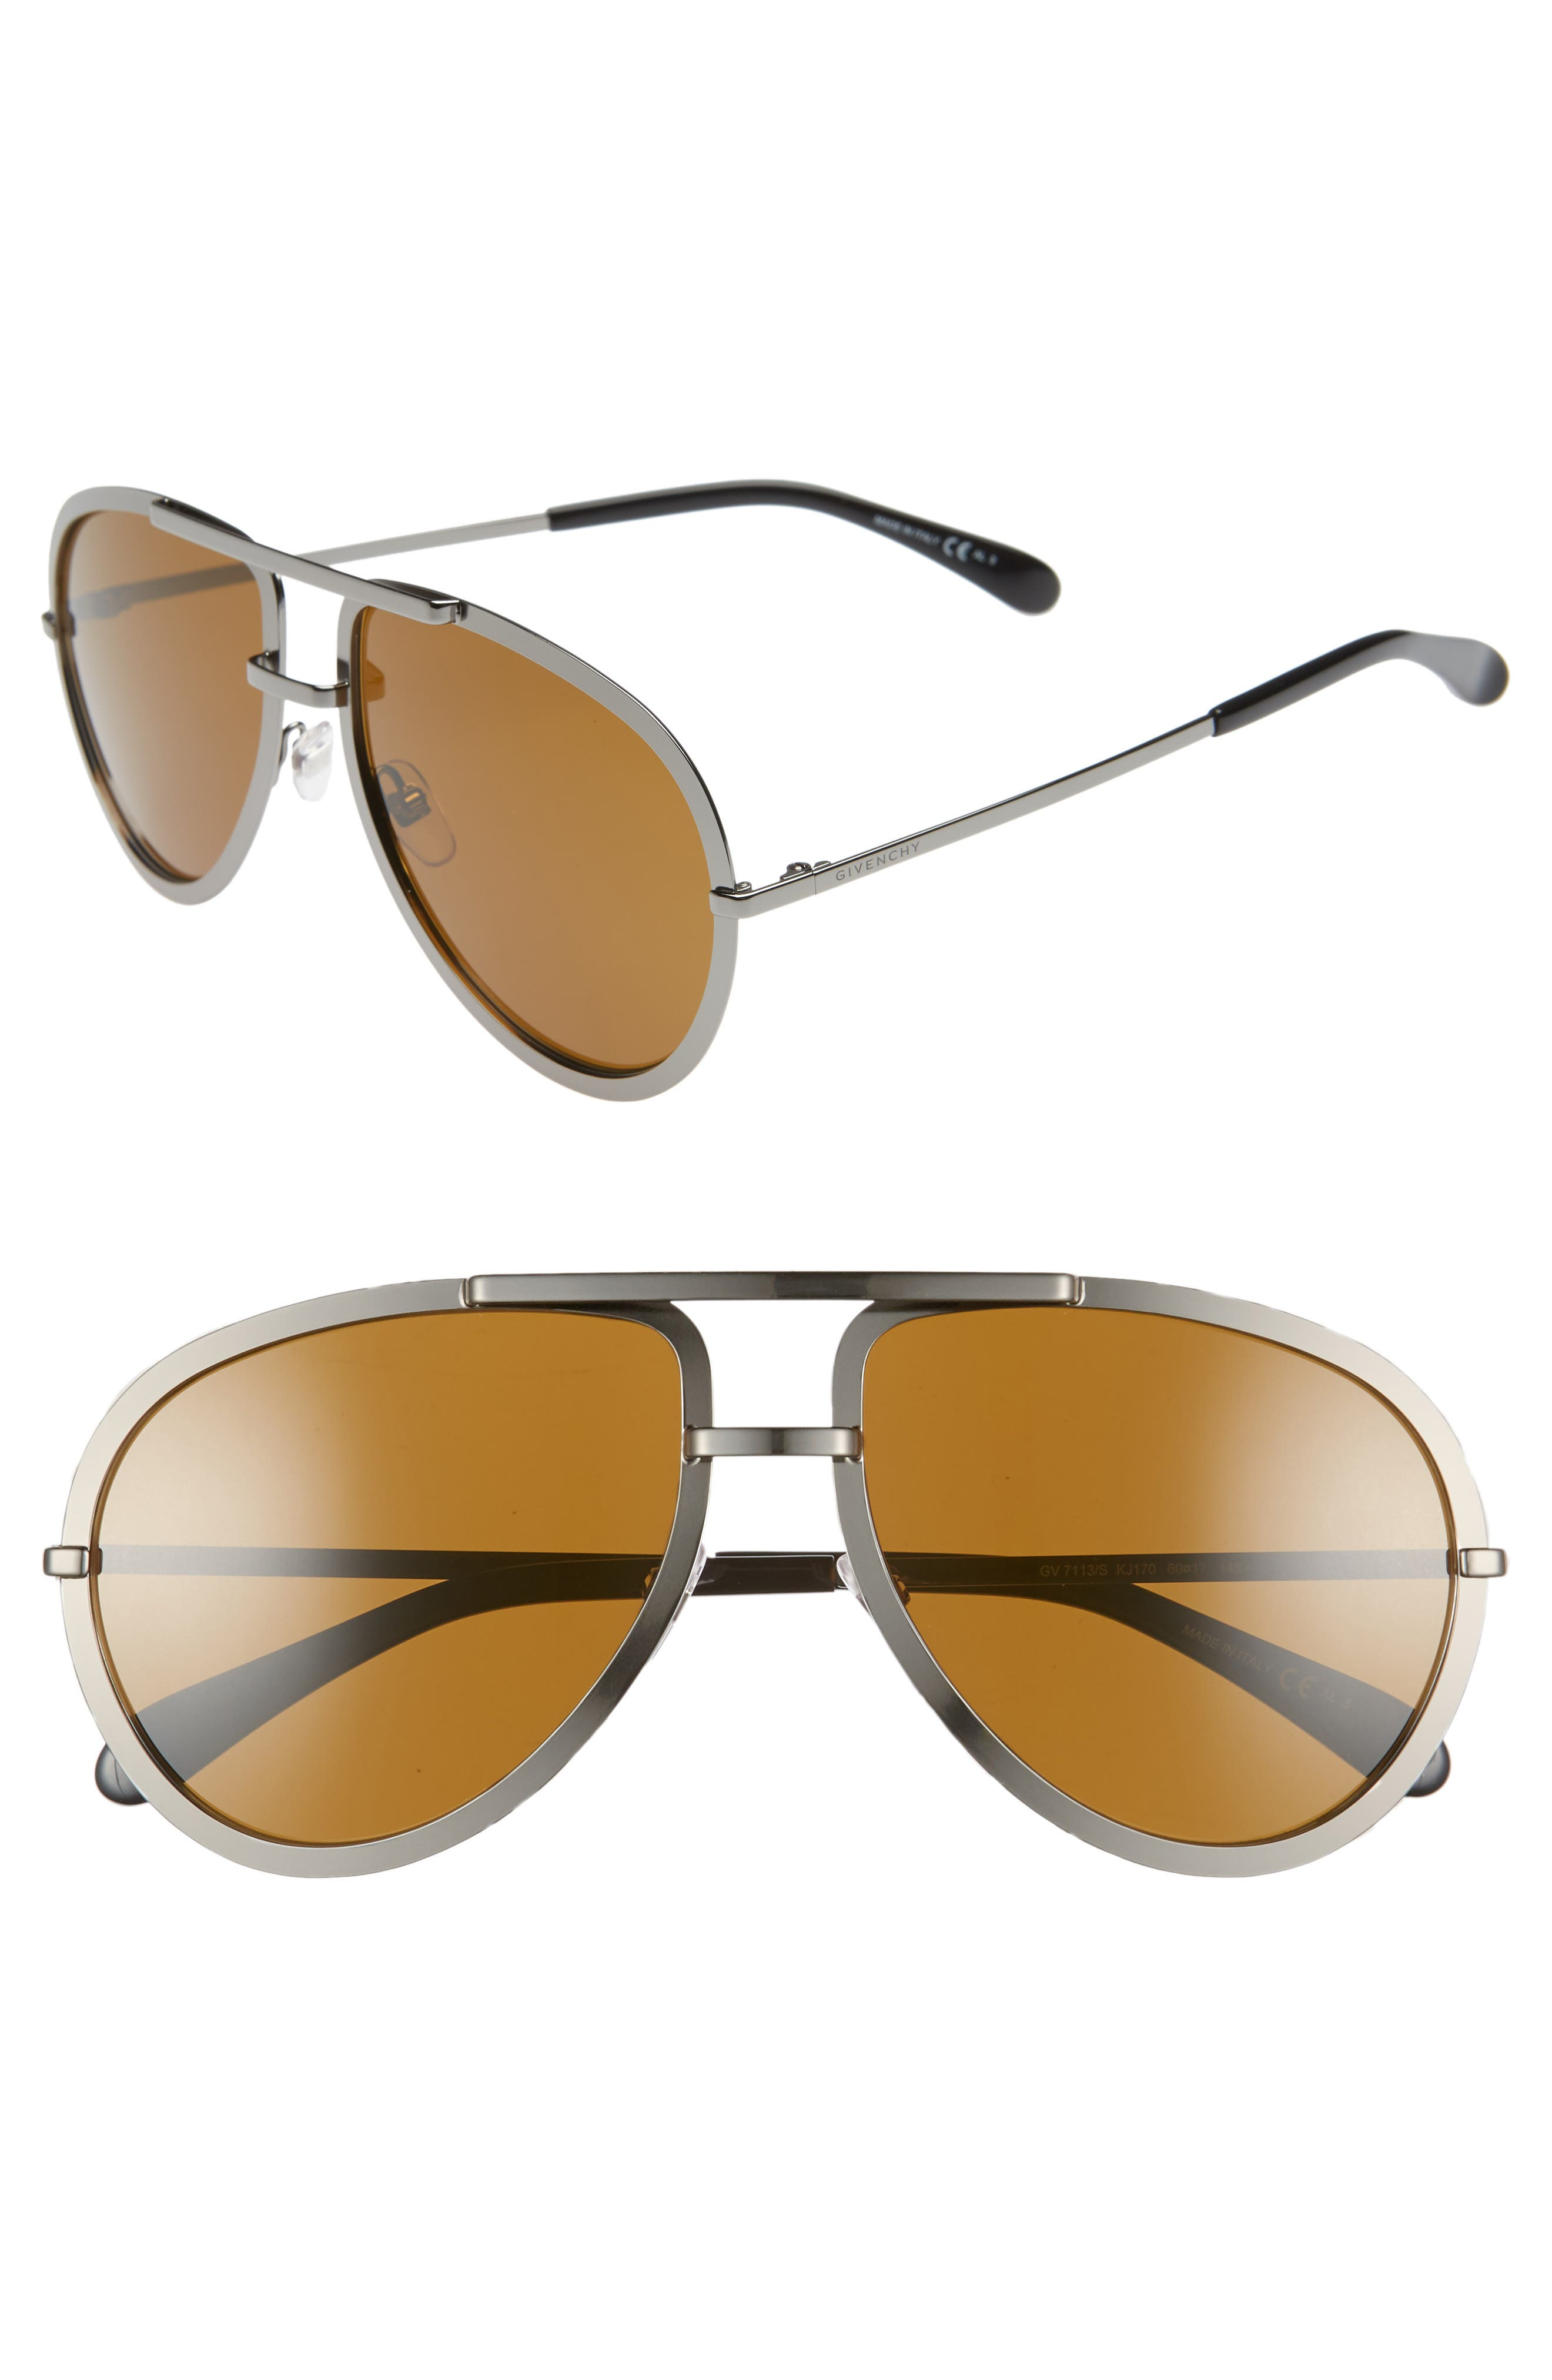 Givenchy 60Mm Aviator Sunglasses - Dark Ruthenium